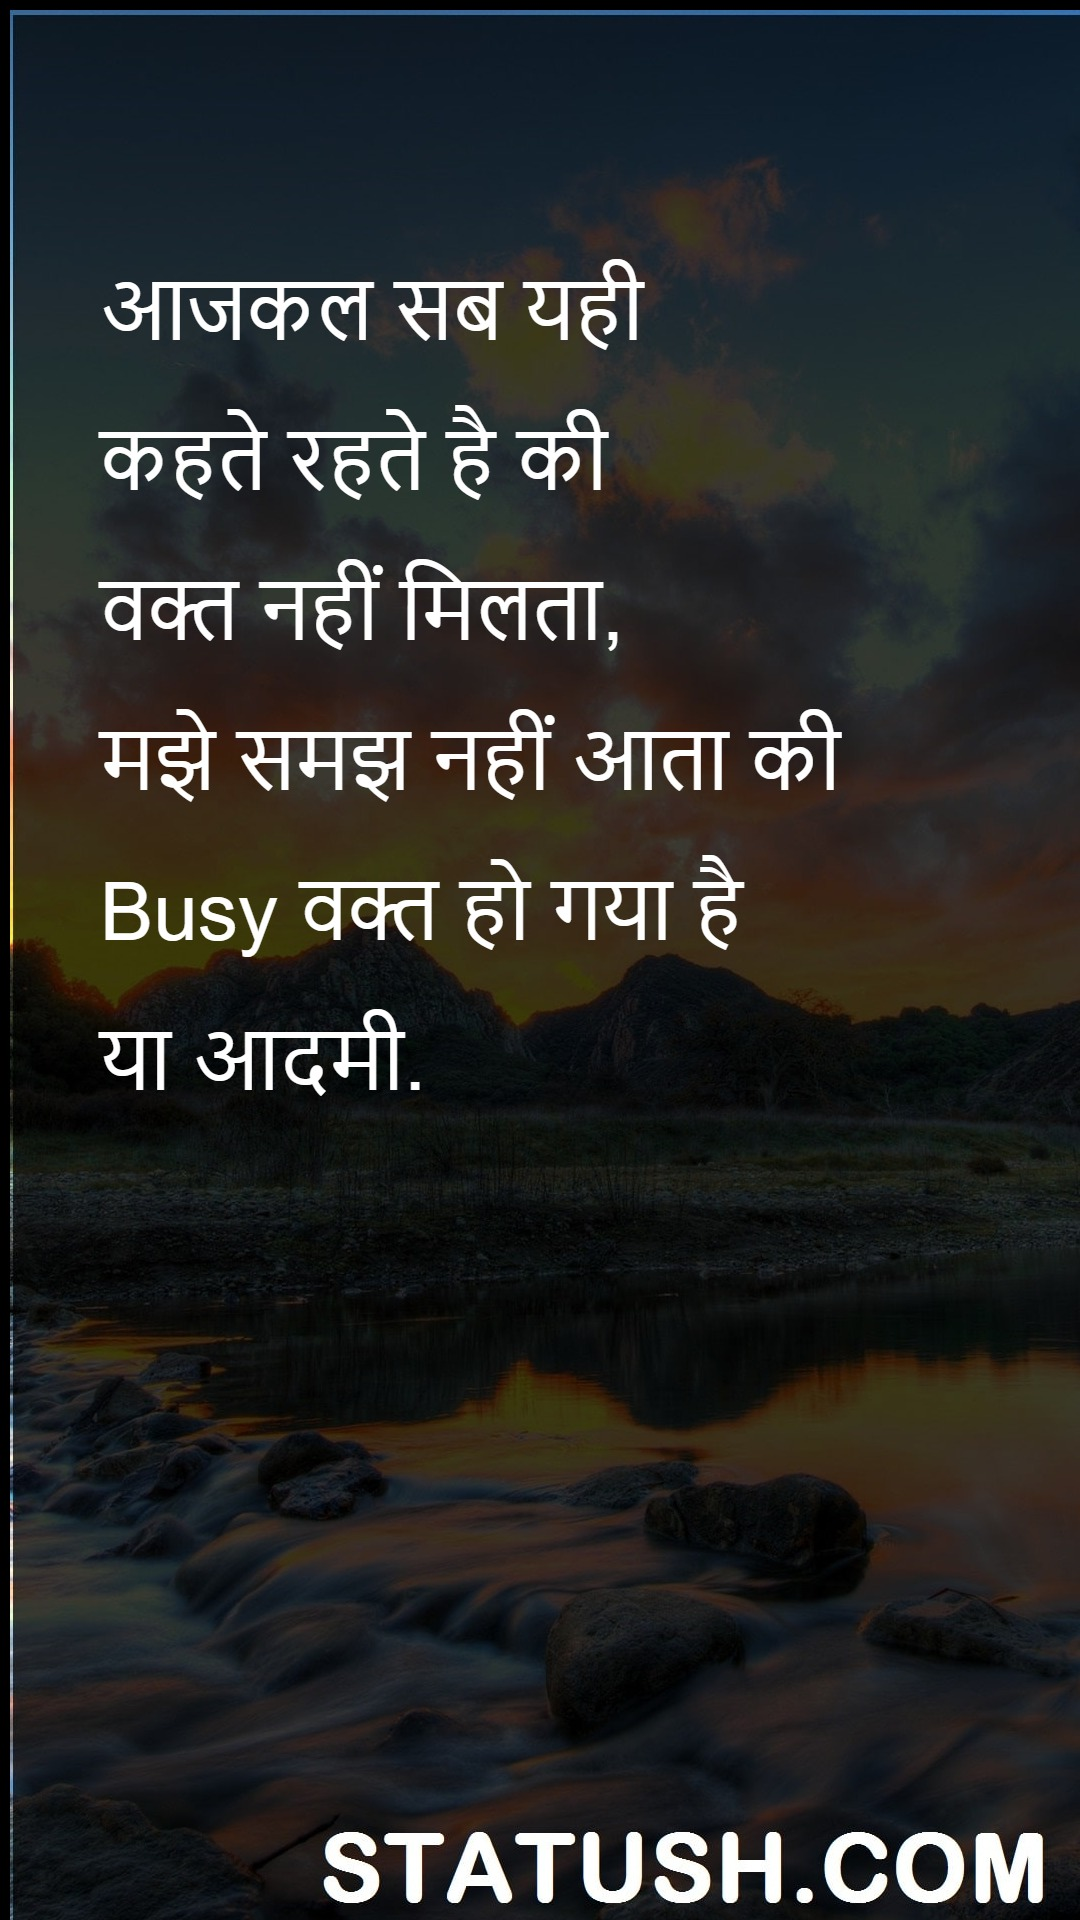 I do not understand whether it is busy time or man